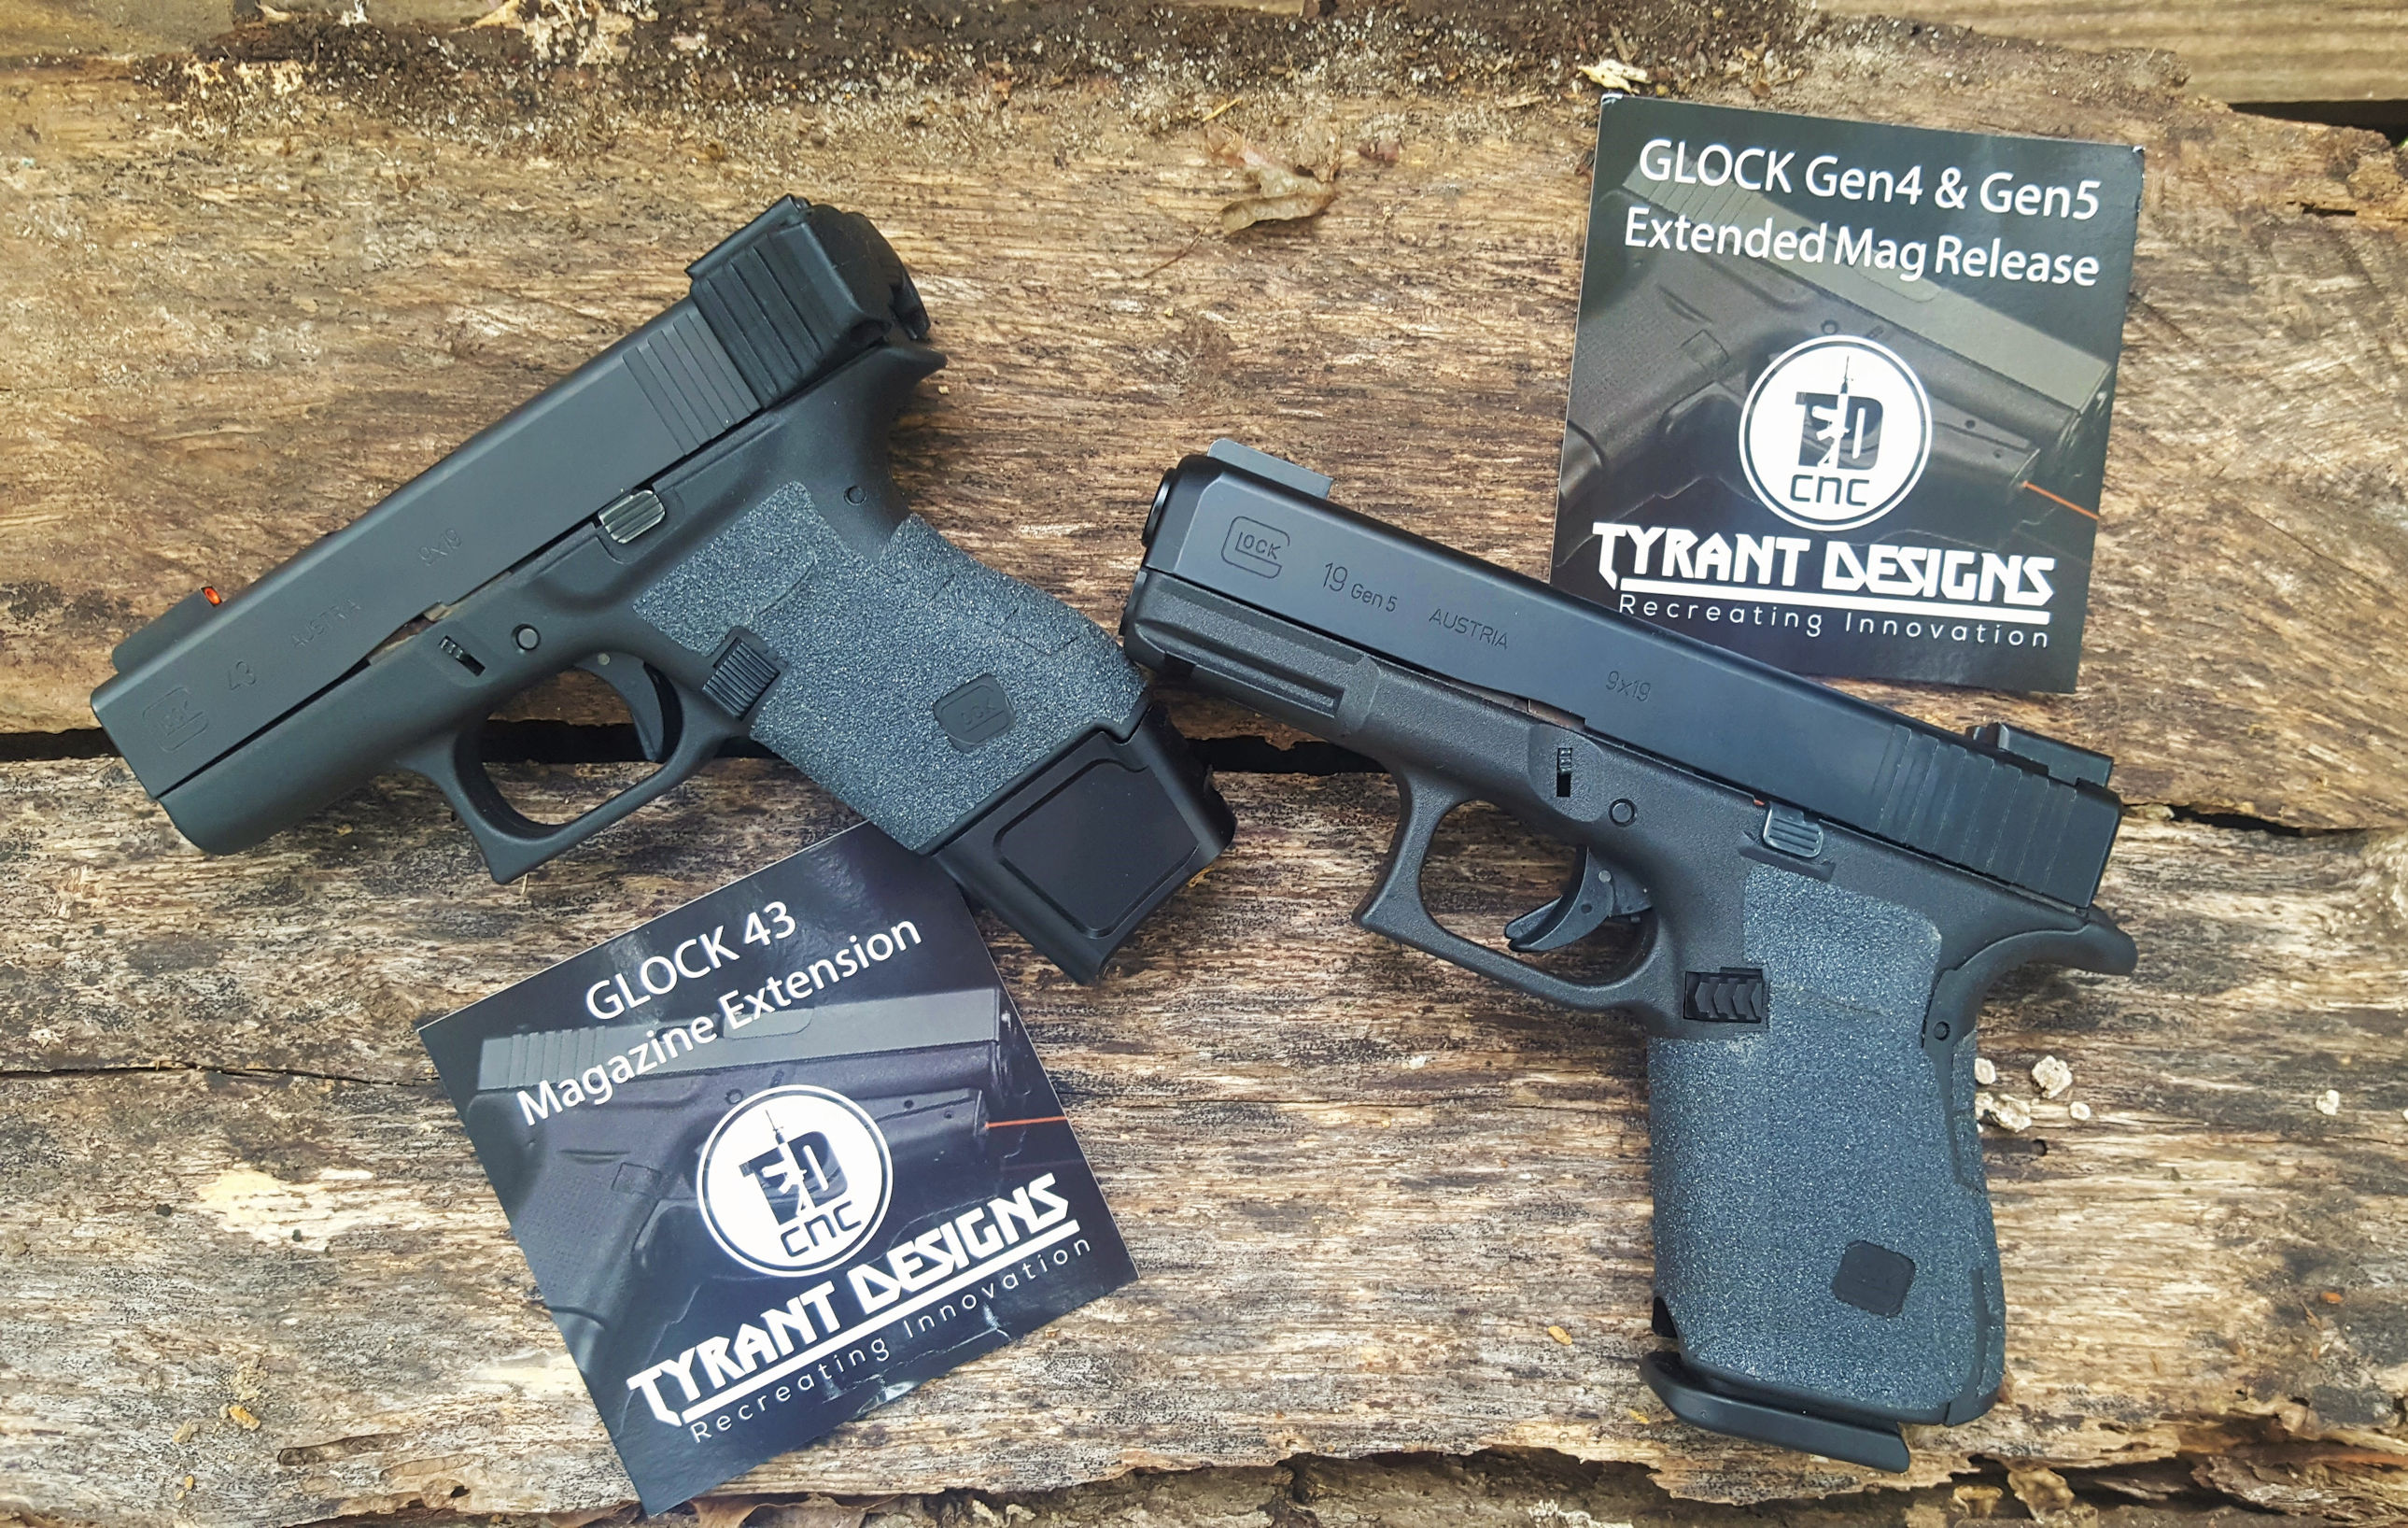 Tyrant Designs Glock 43 3 Mag Magazine Extension And Gen4 And